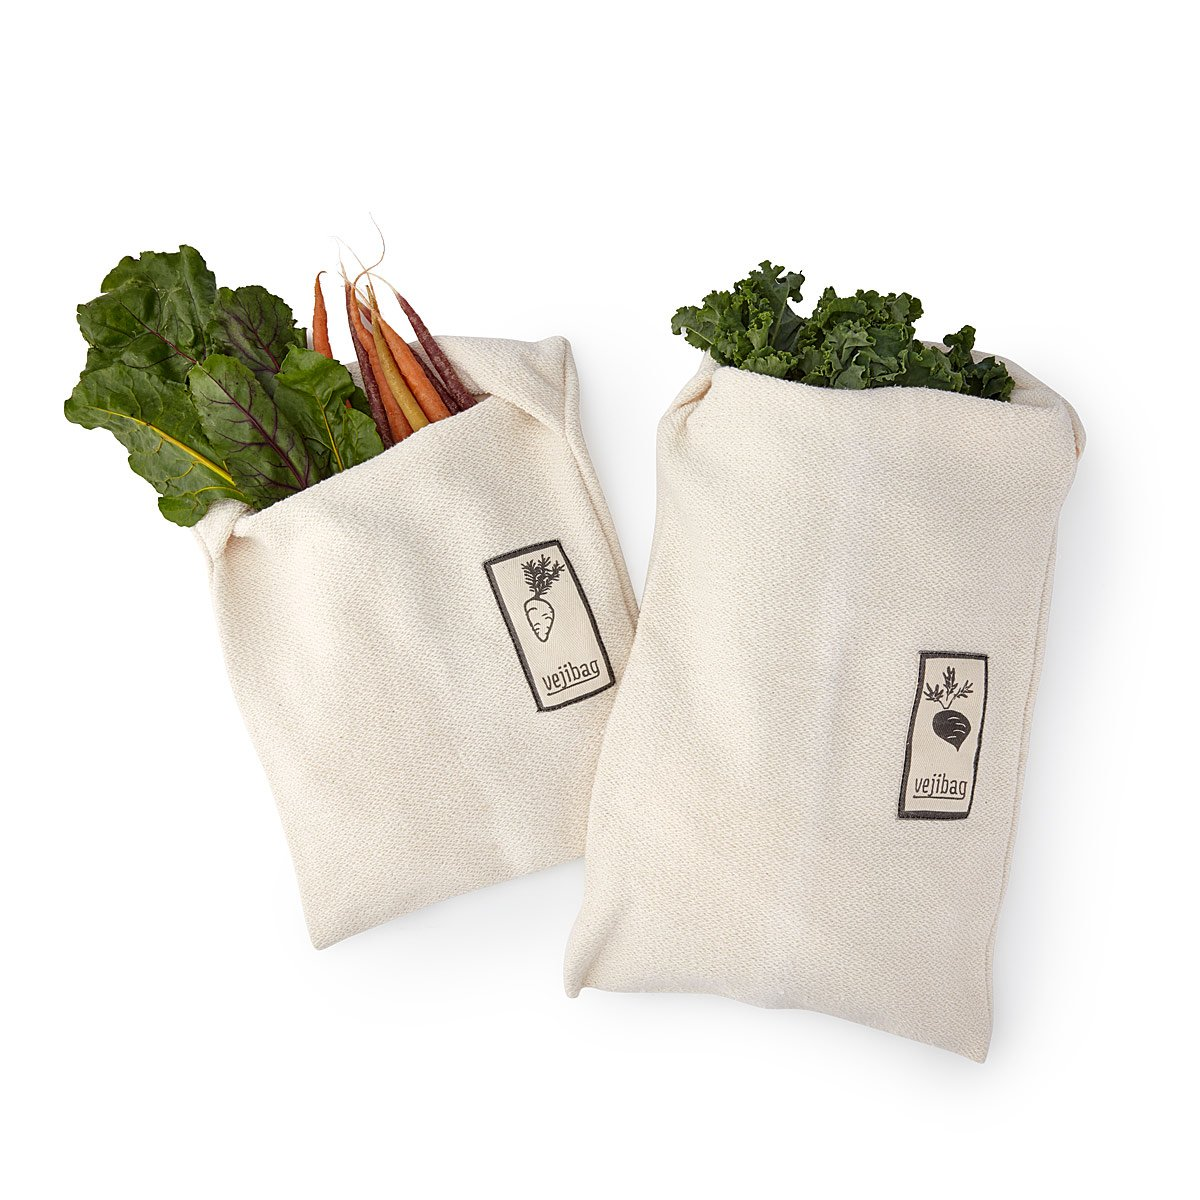 Veggie-Saving Reusable Bags